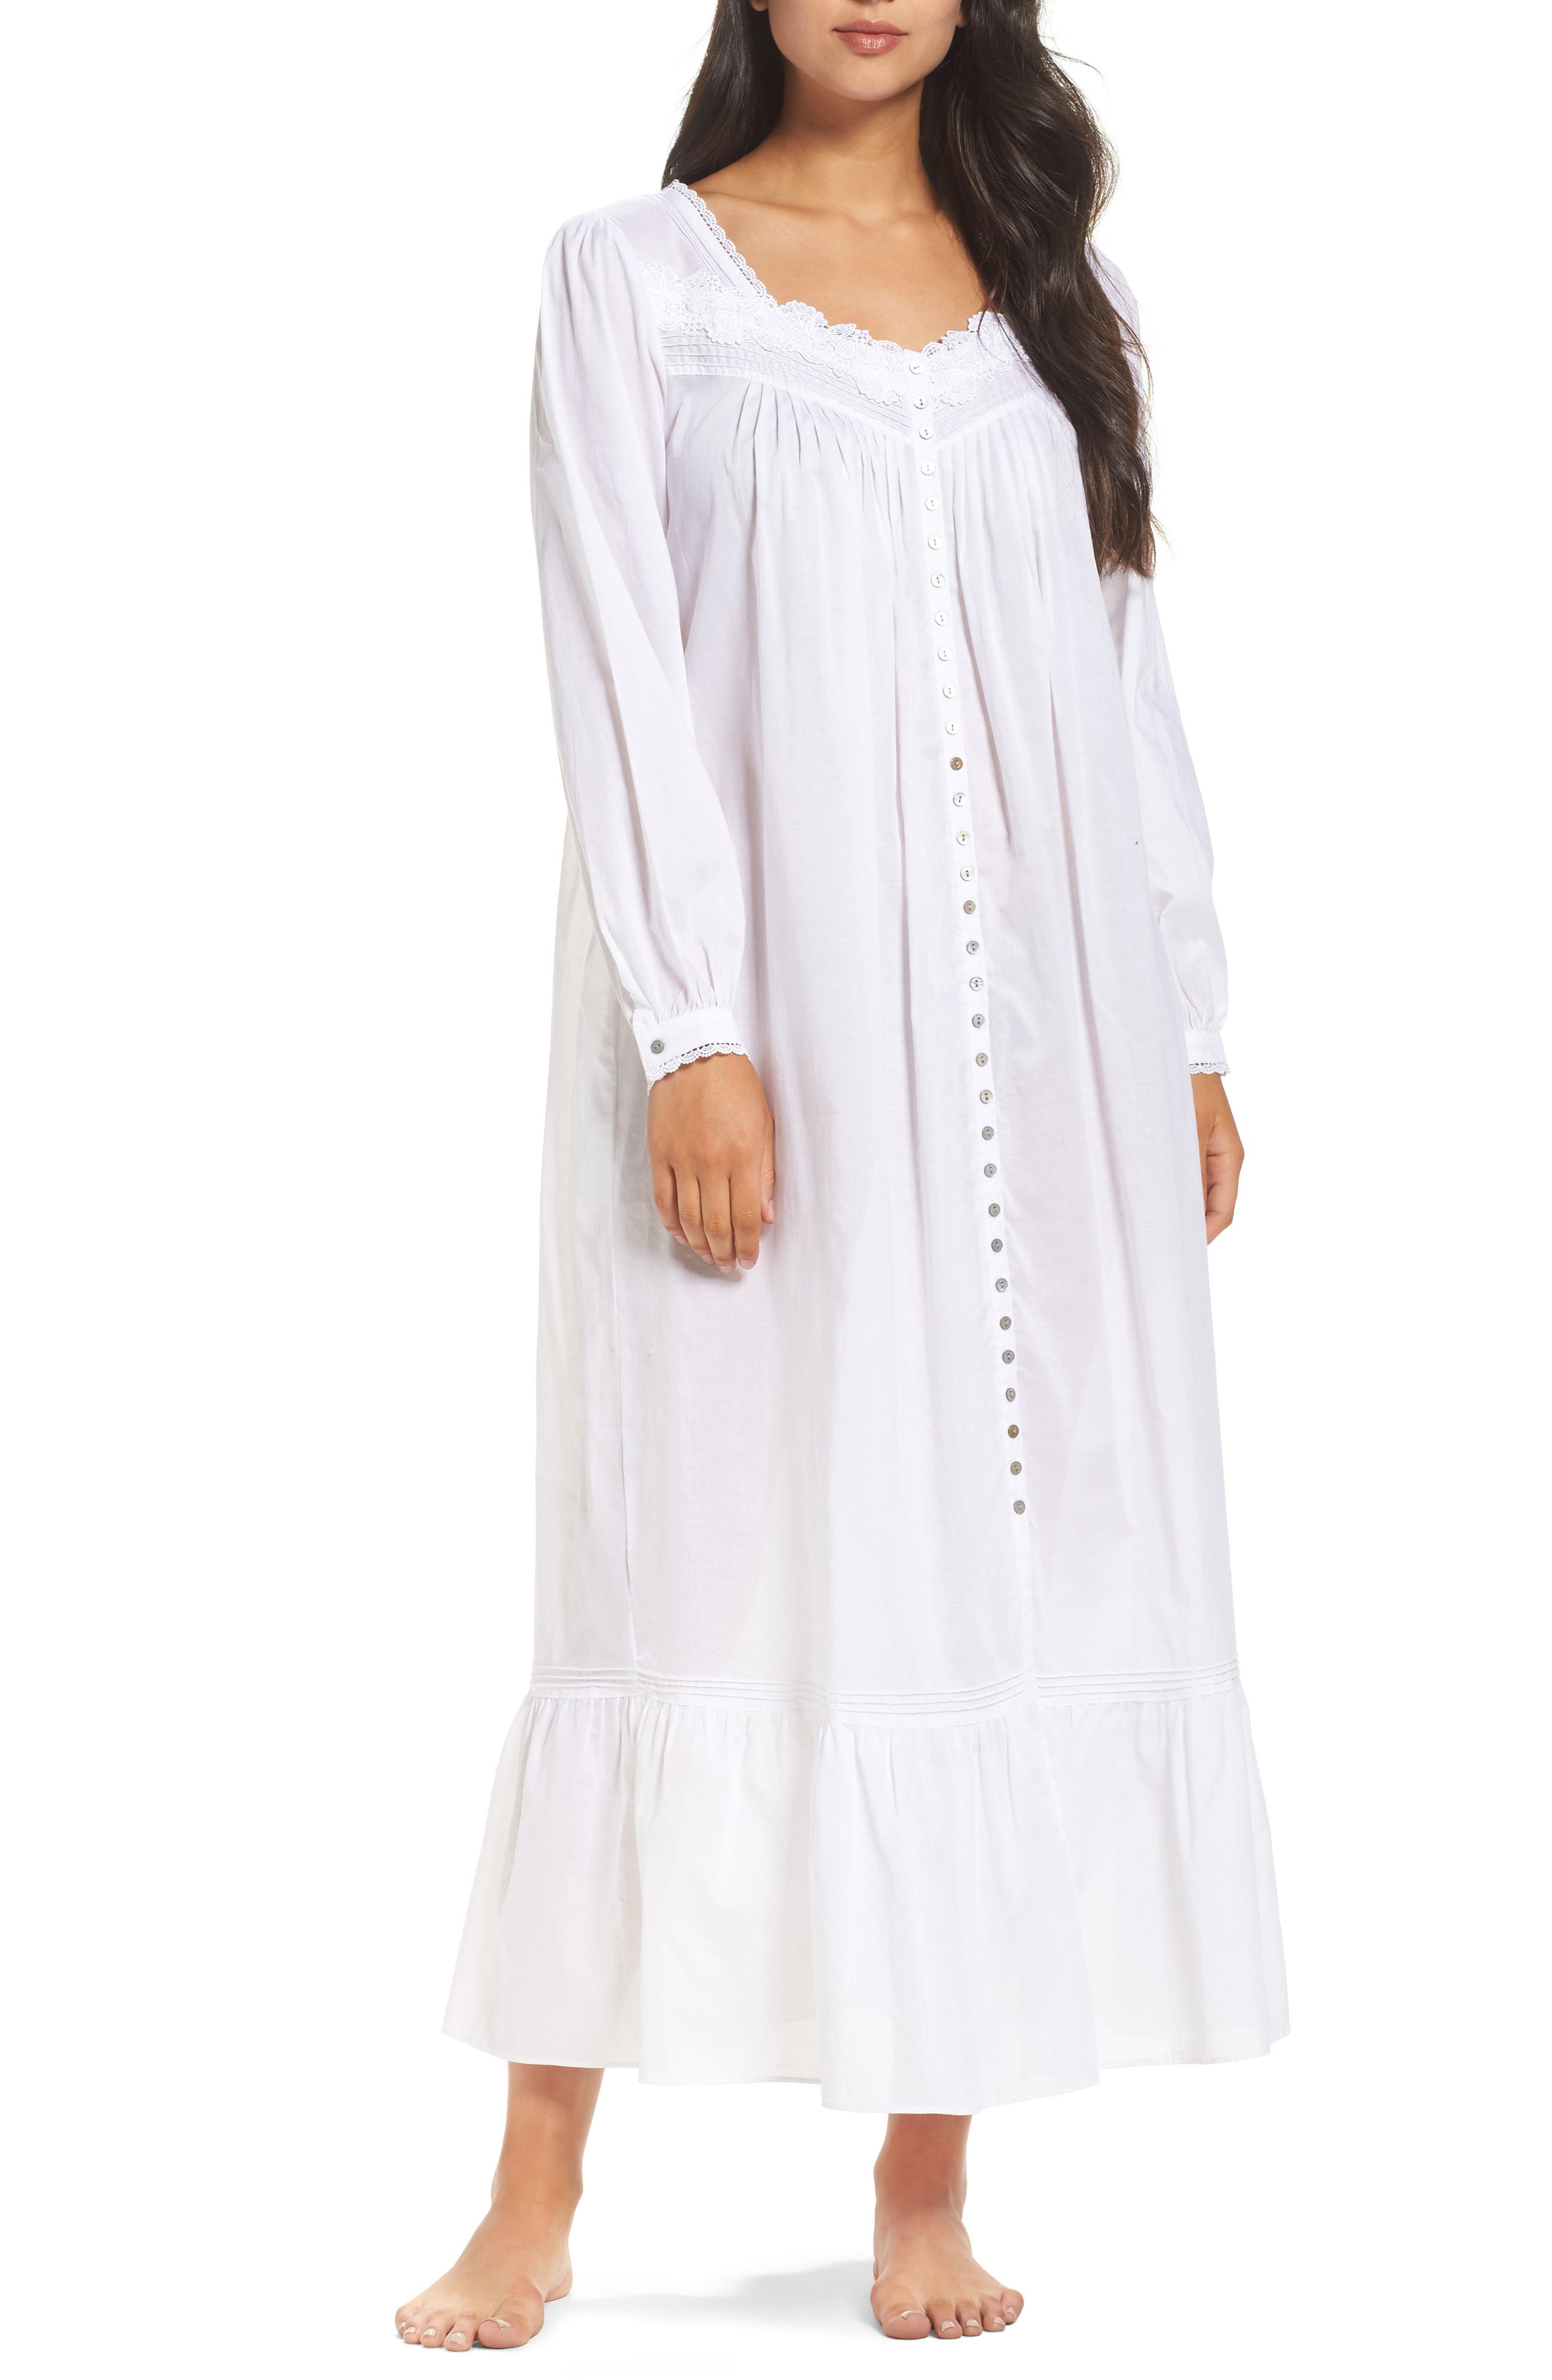 Ballet Button Nightgown,                         Main,                         color, White